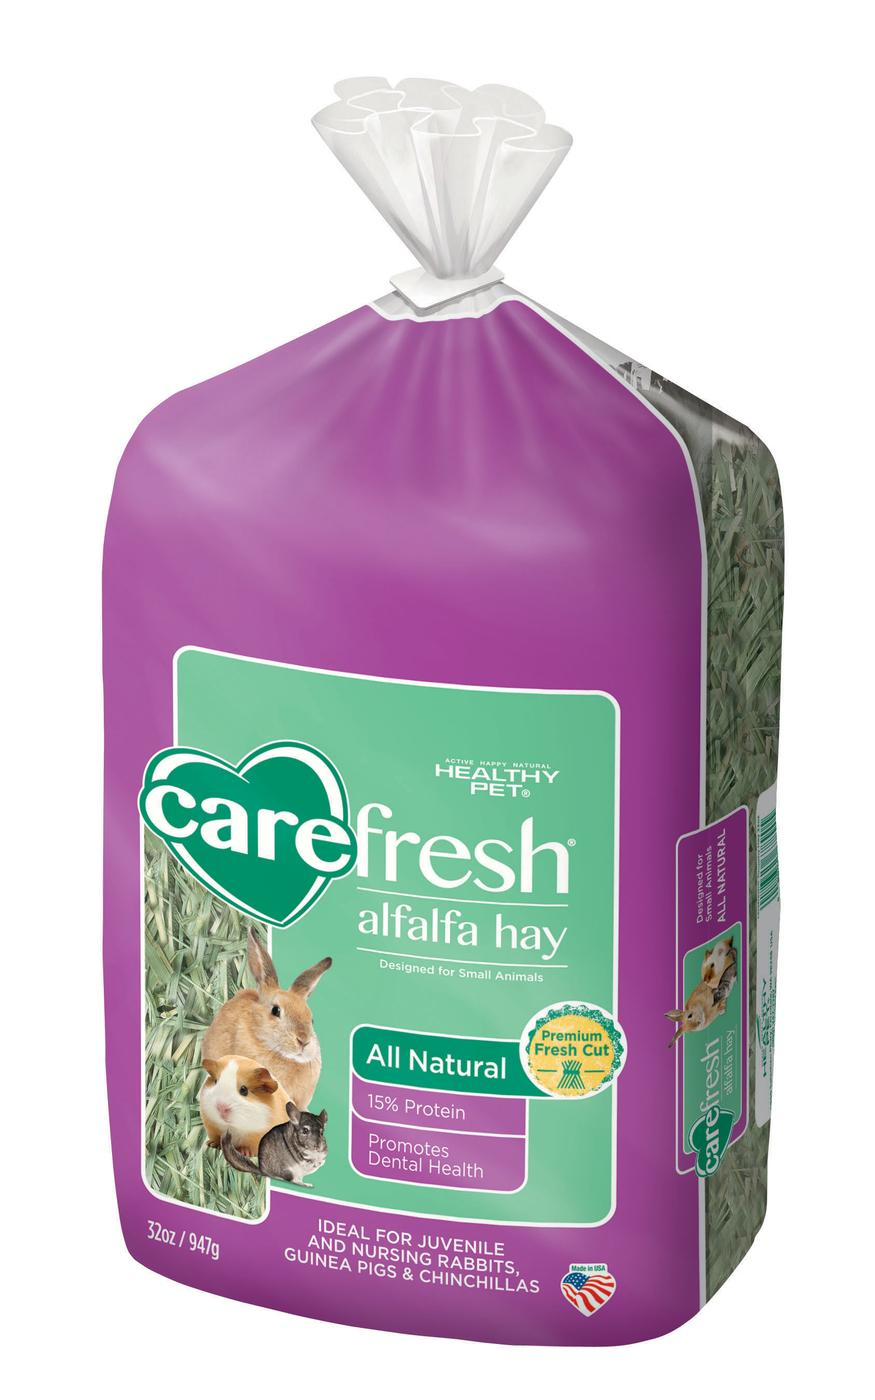 Carefresh® Complete Alfalfa Hay